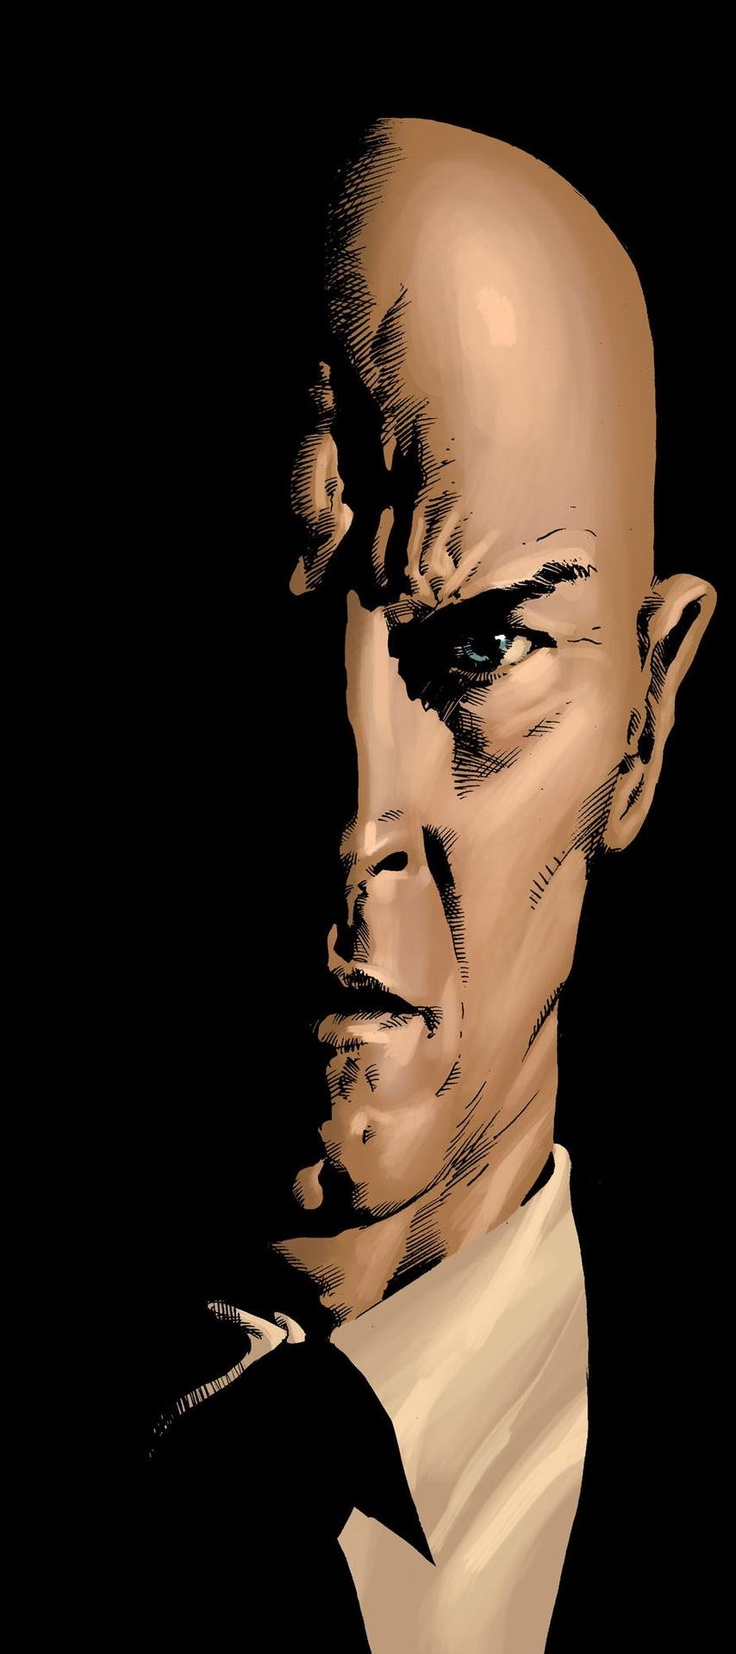 Professor X by Mike Deodato Jr. Colors by Rain. (Charles Francis Xavier) a paraplegic, know as the founder of the X-men.  As a high-level telepath, Xavier can read, control, and influence human minds. A scientific genius, he is also a leading authority on genetics, mutation, and psionic powers. His dream of peaceful coexistence between mutants and humanity has long been the driving force for the X-Men.